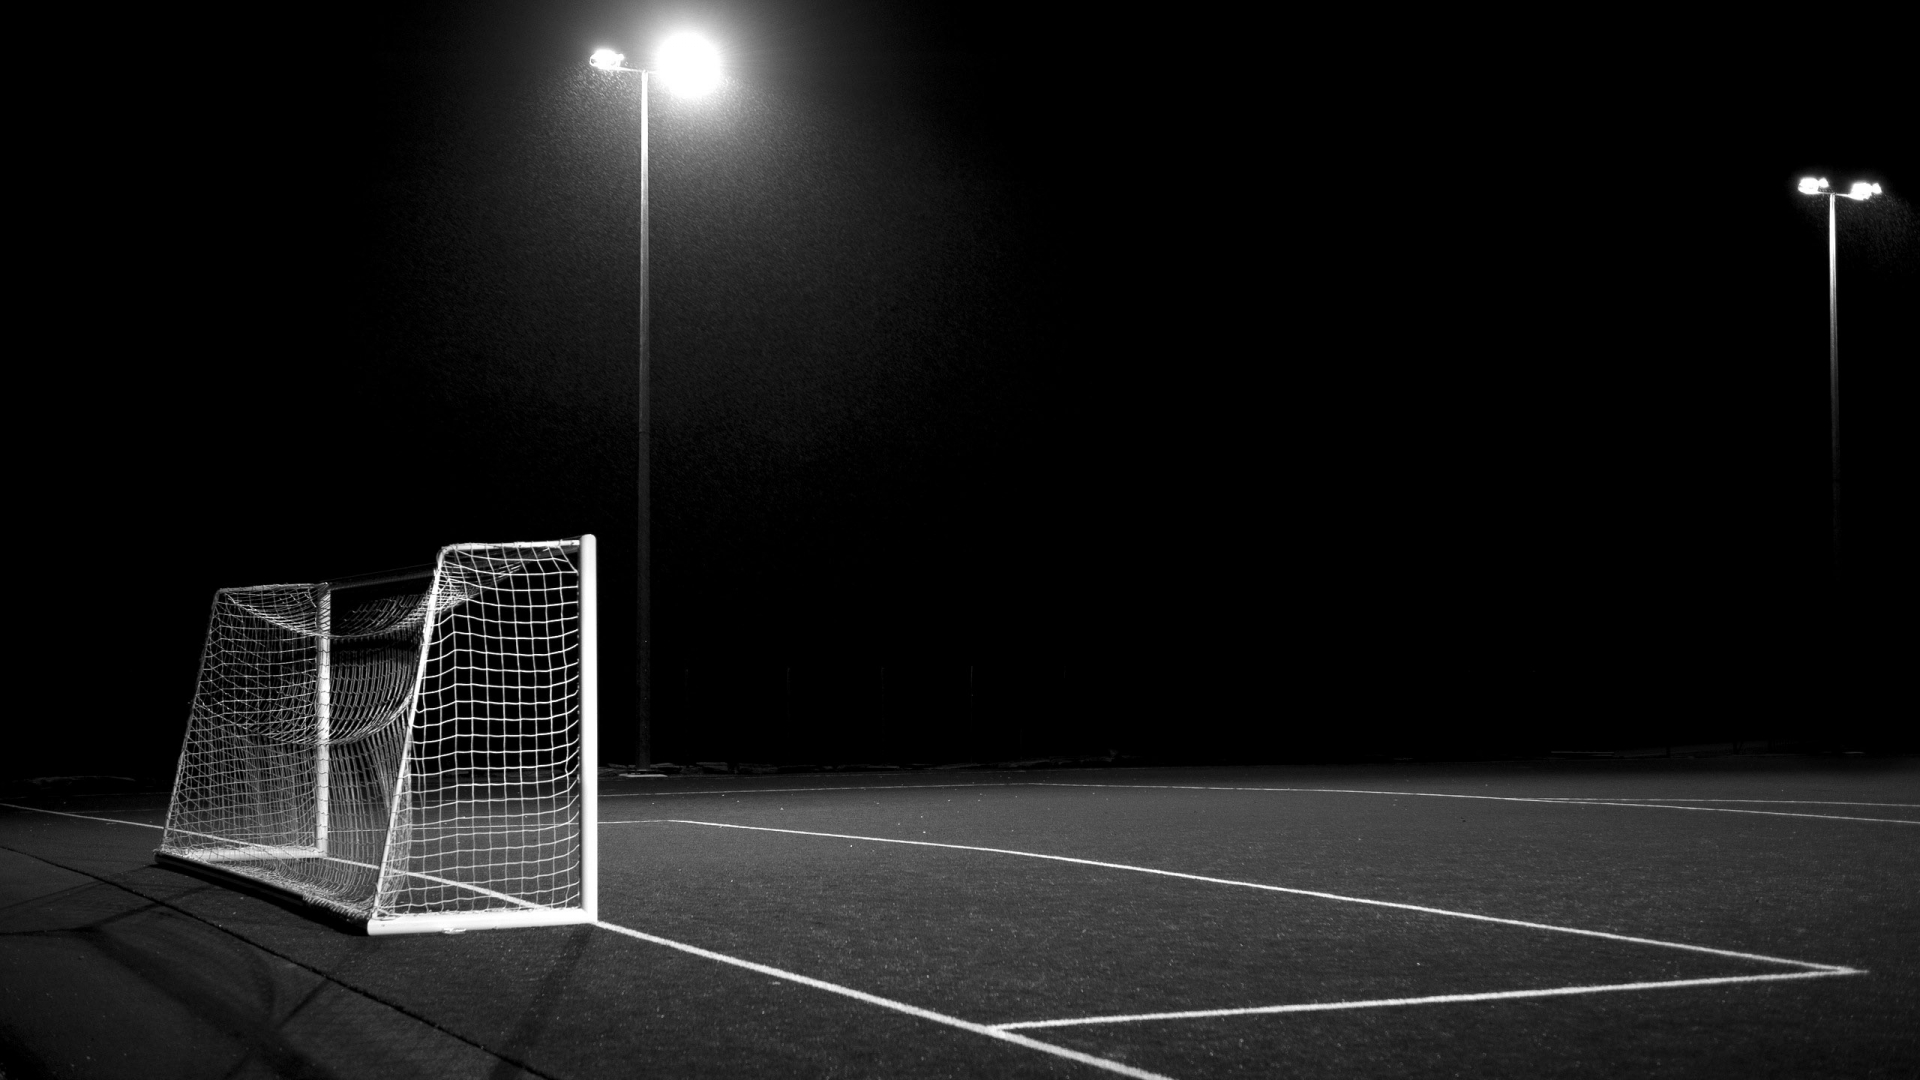 Floodlight Football Wallpaper Wallpapers